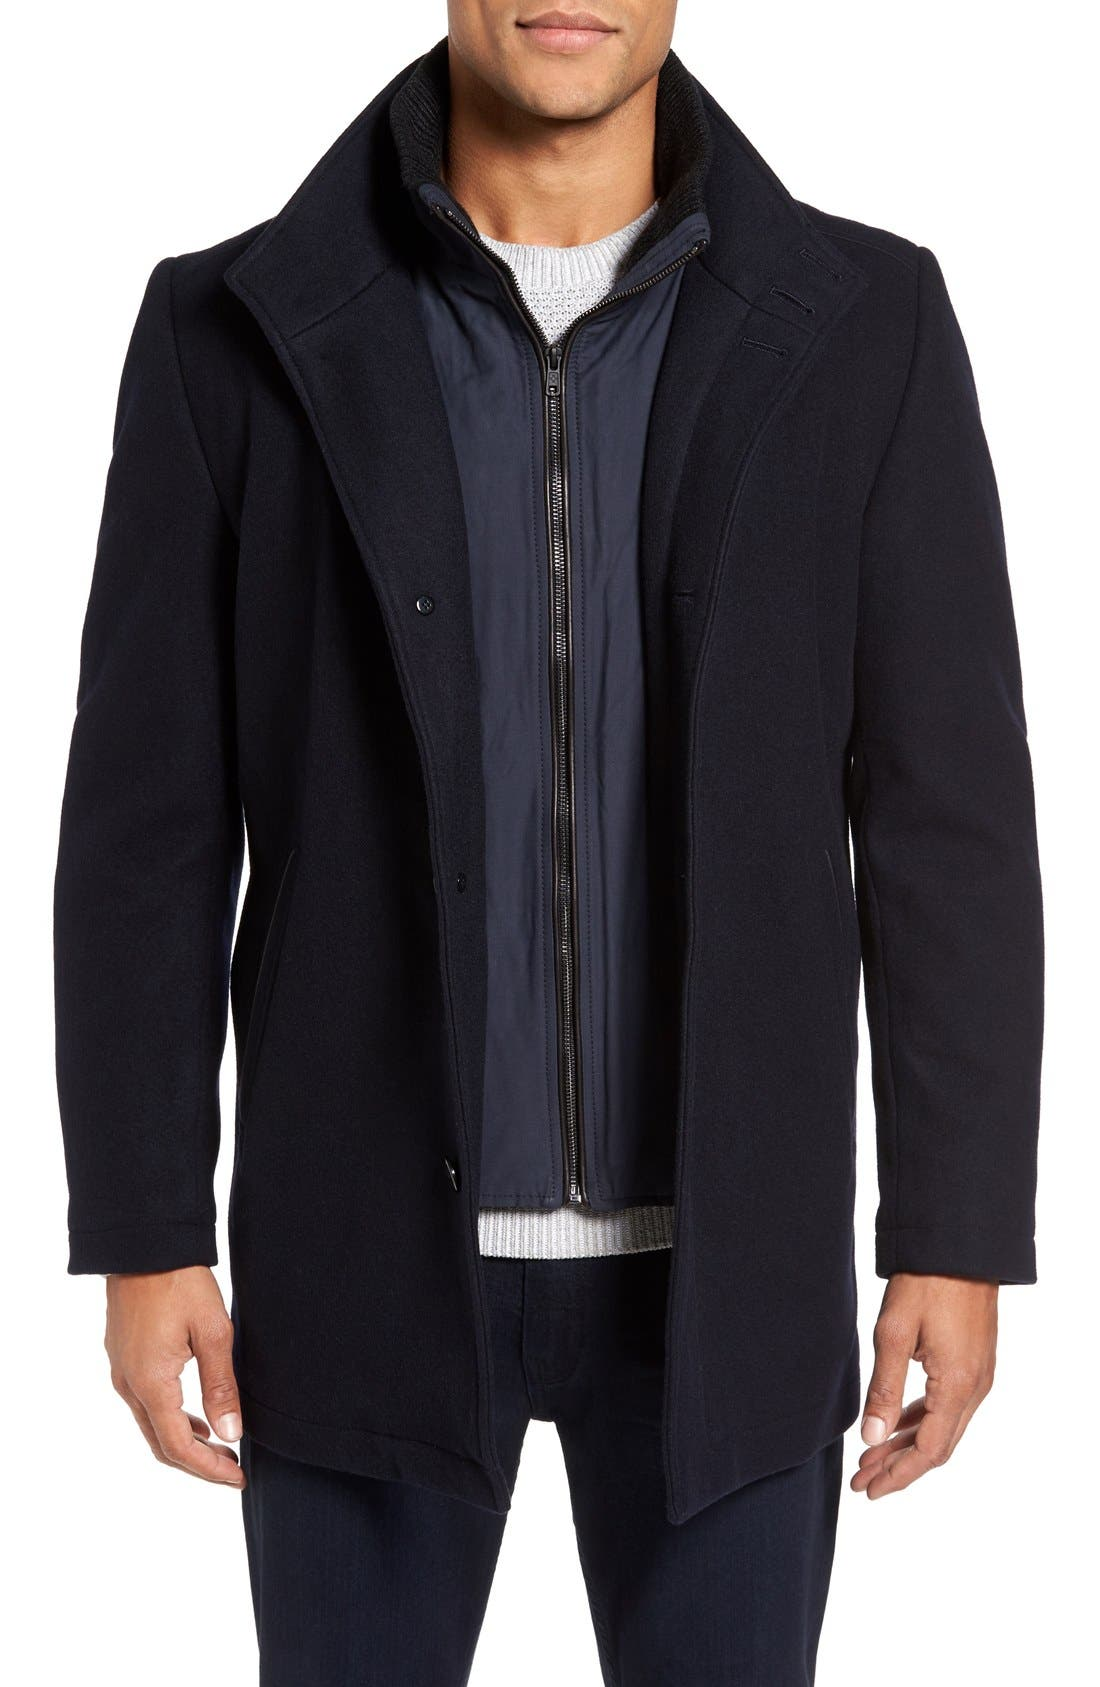 Main Image - Vince Camuto Classic Wool Blend Car Coat with Inset Bib